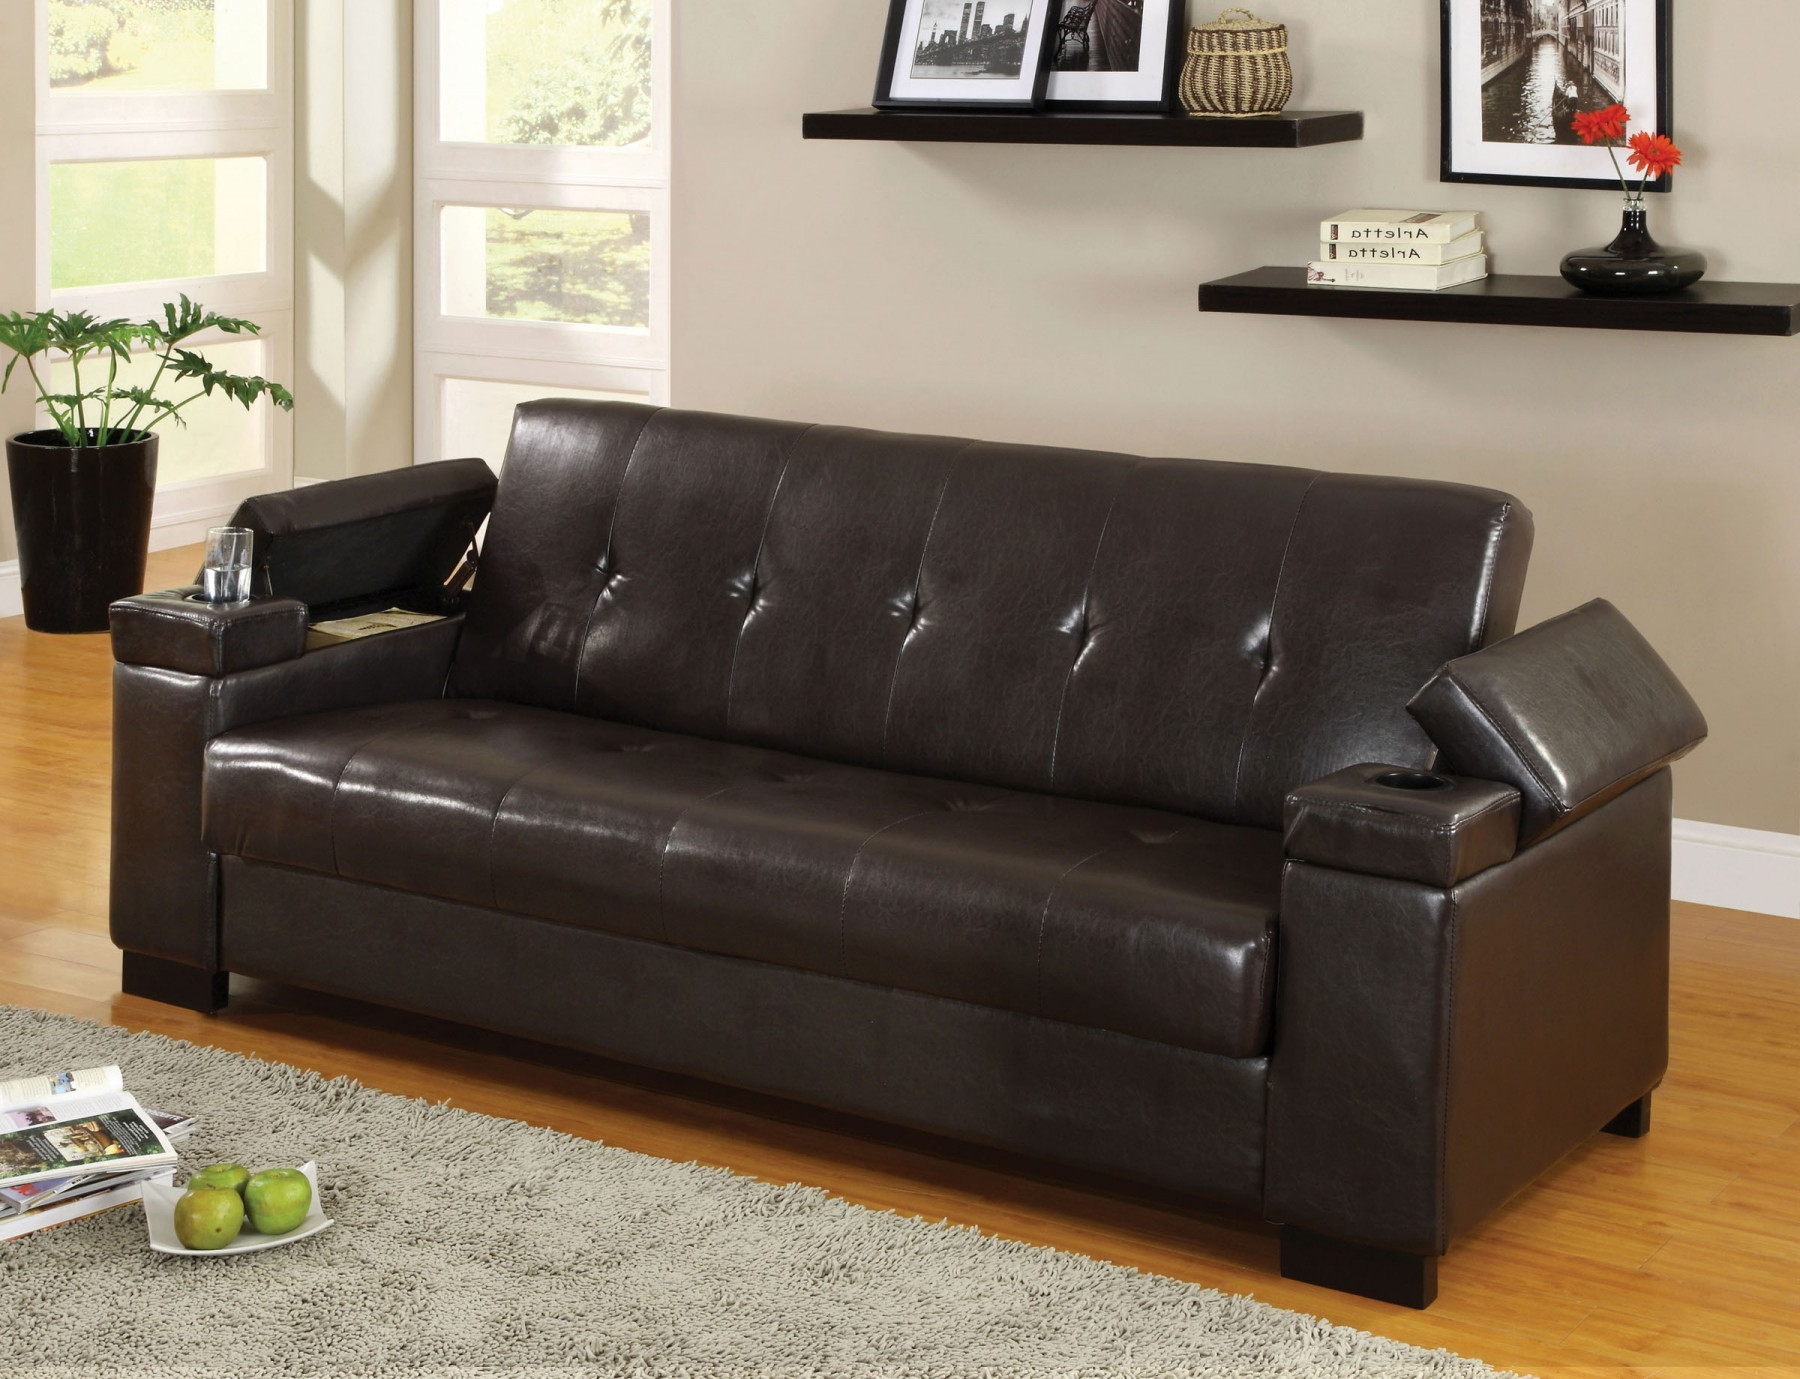 Enrico Sofa Bed With Storage & Cup Holder – Futons With Regard To Recent Celine Sectional Futon Sofas With Storage Reclining Couch (View 11 of 25)